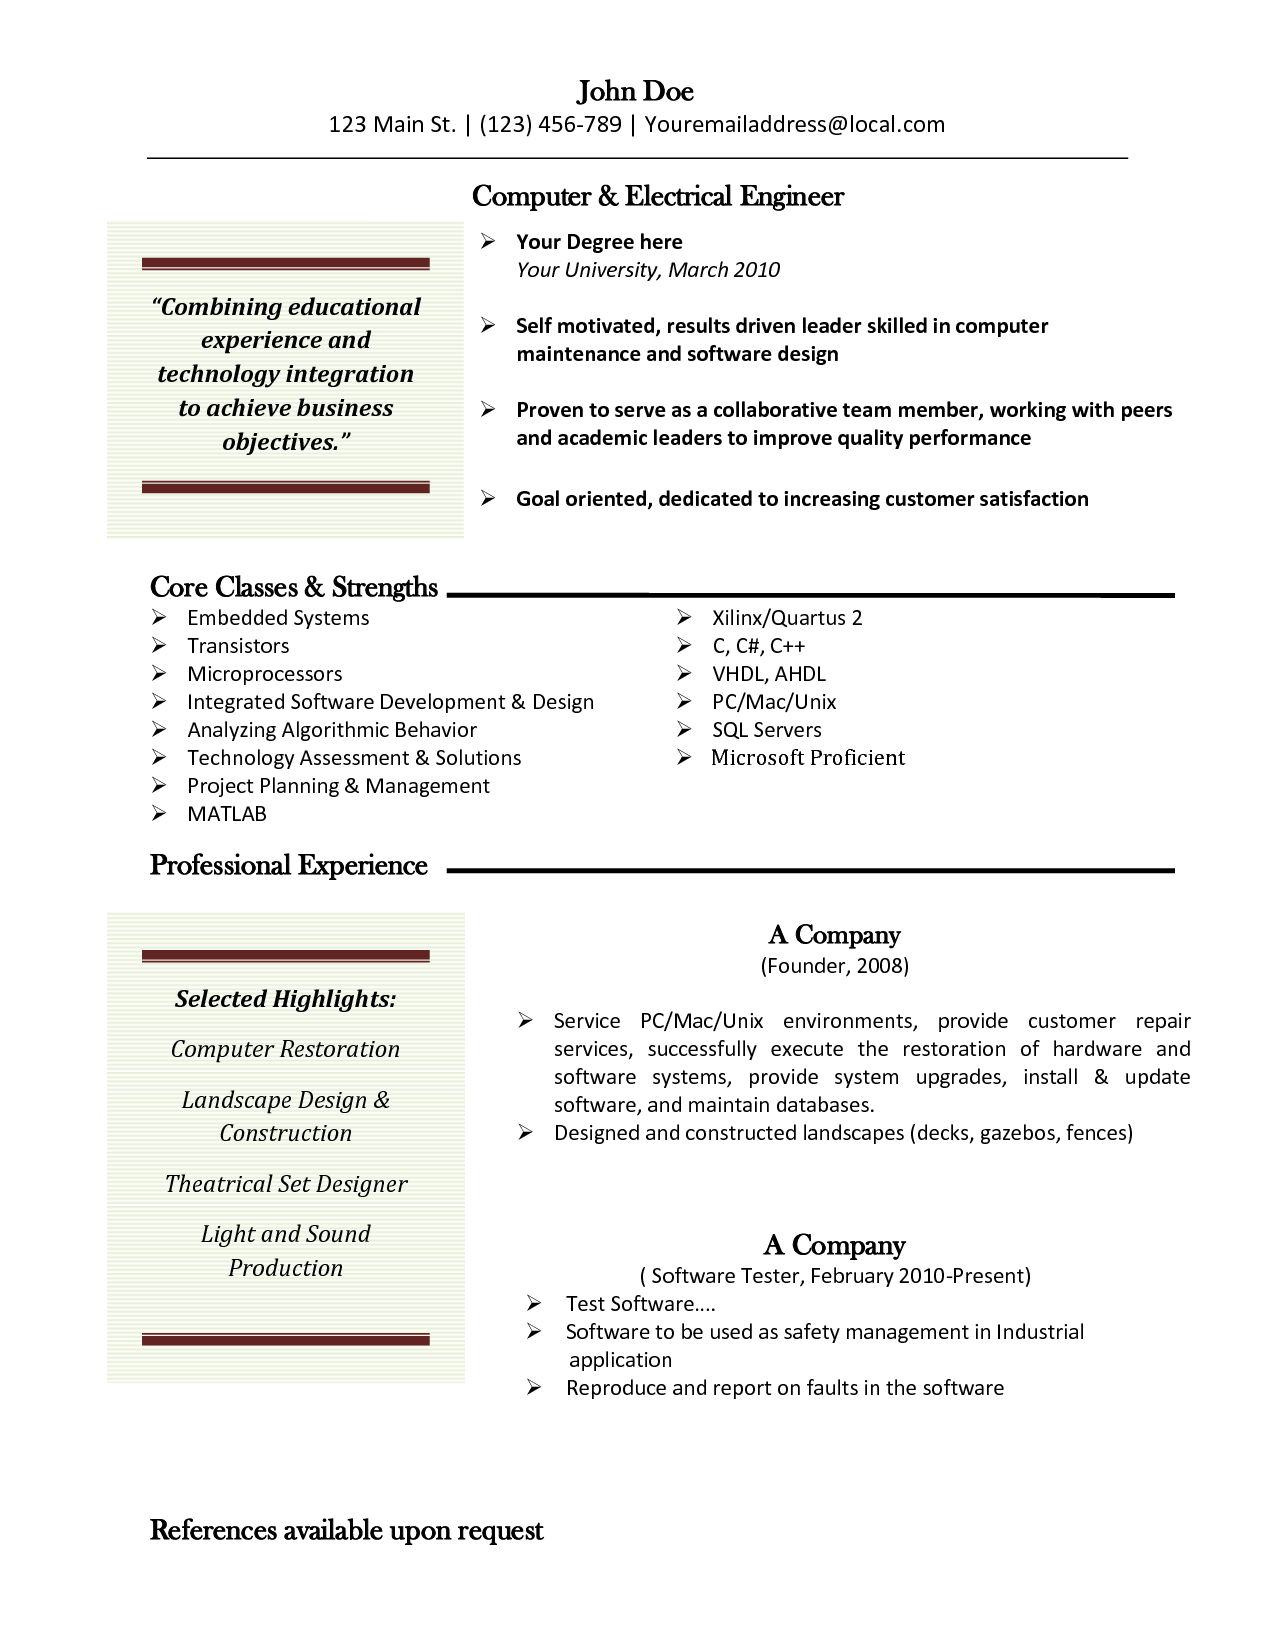 Free Resume Templates For Mac Best TemplateFree Resume Templates Cover  Letter Examples  Free General Resume Template